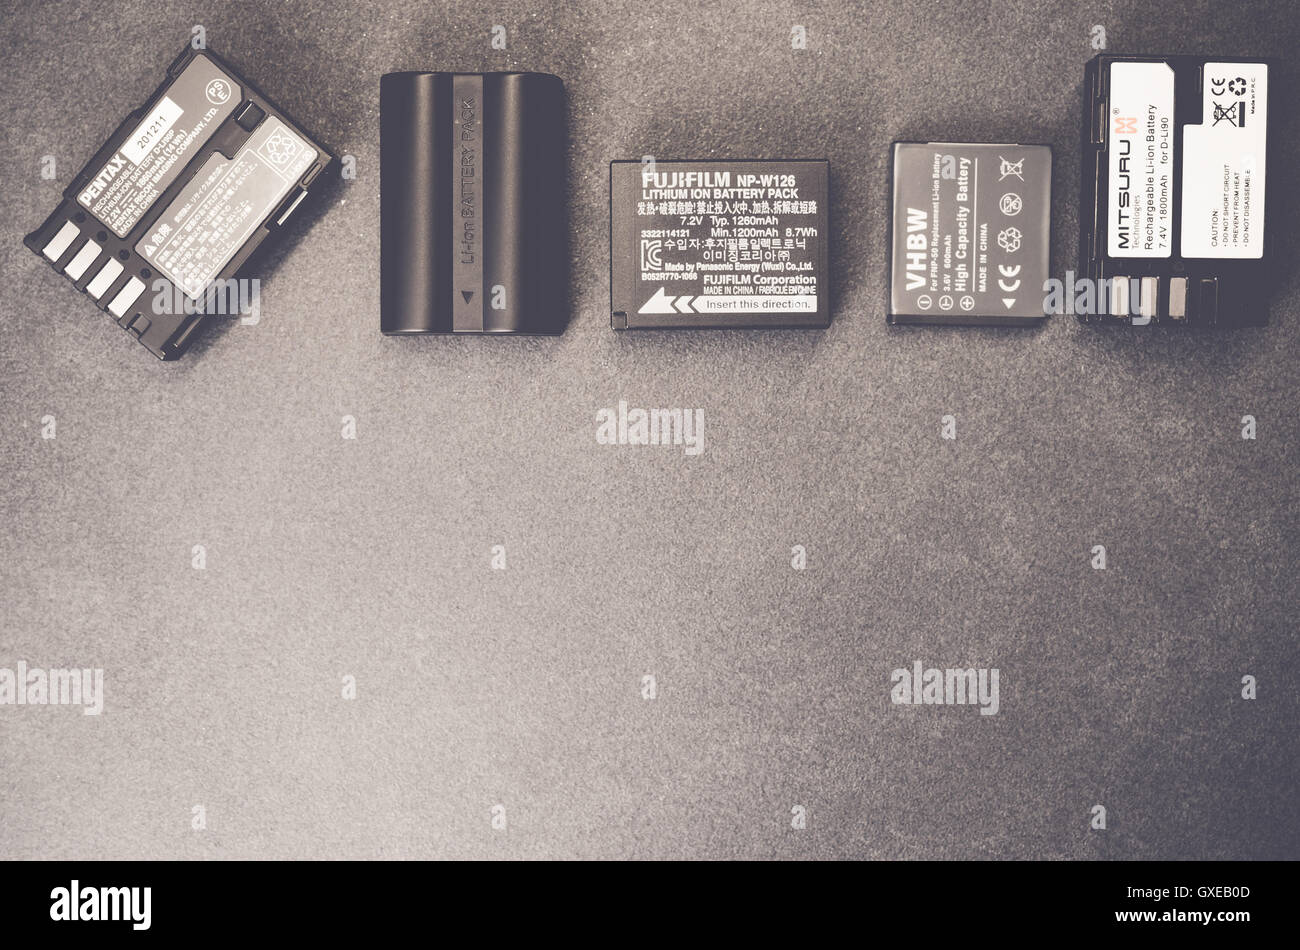 spare camera batteries on a slate worktop - Stock Image